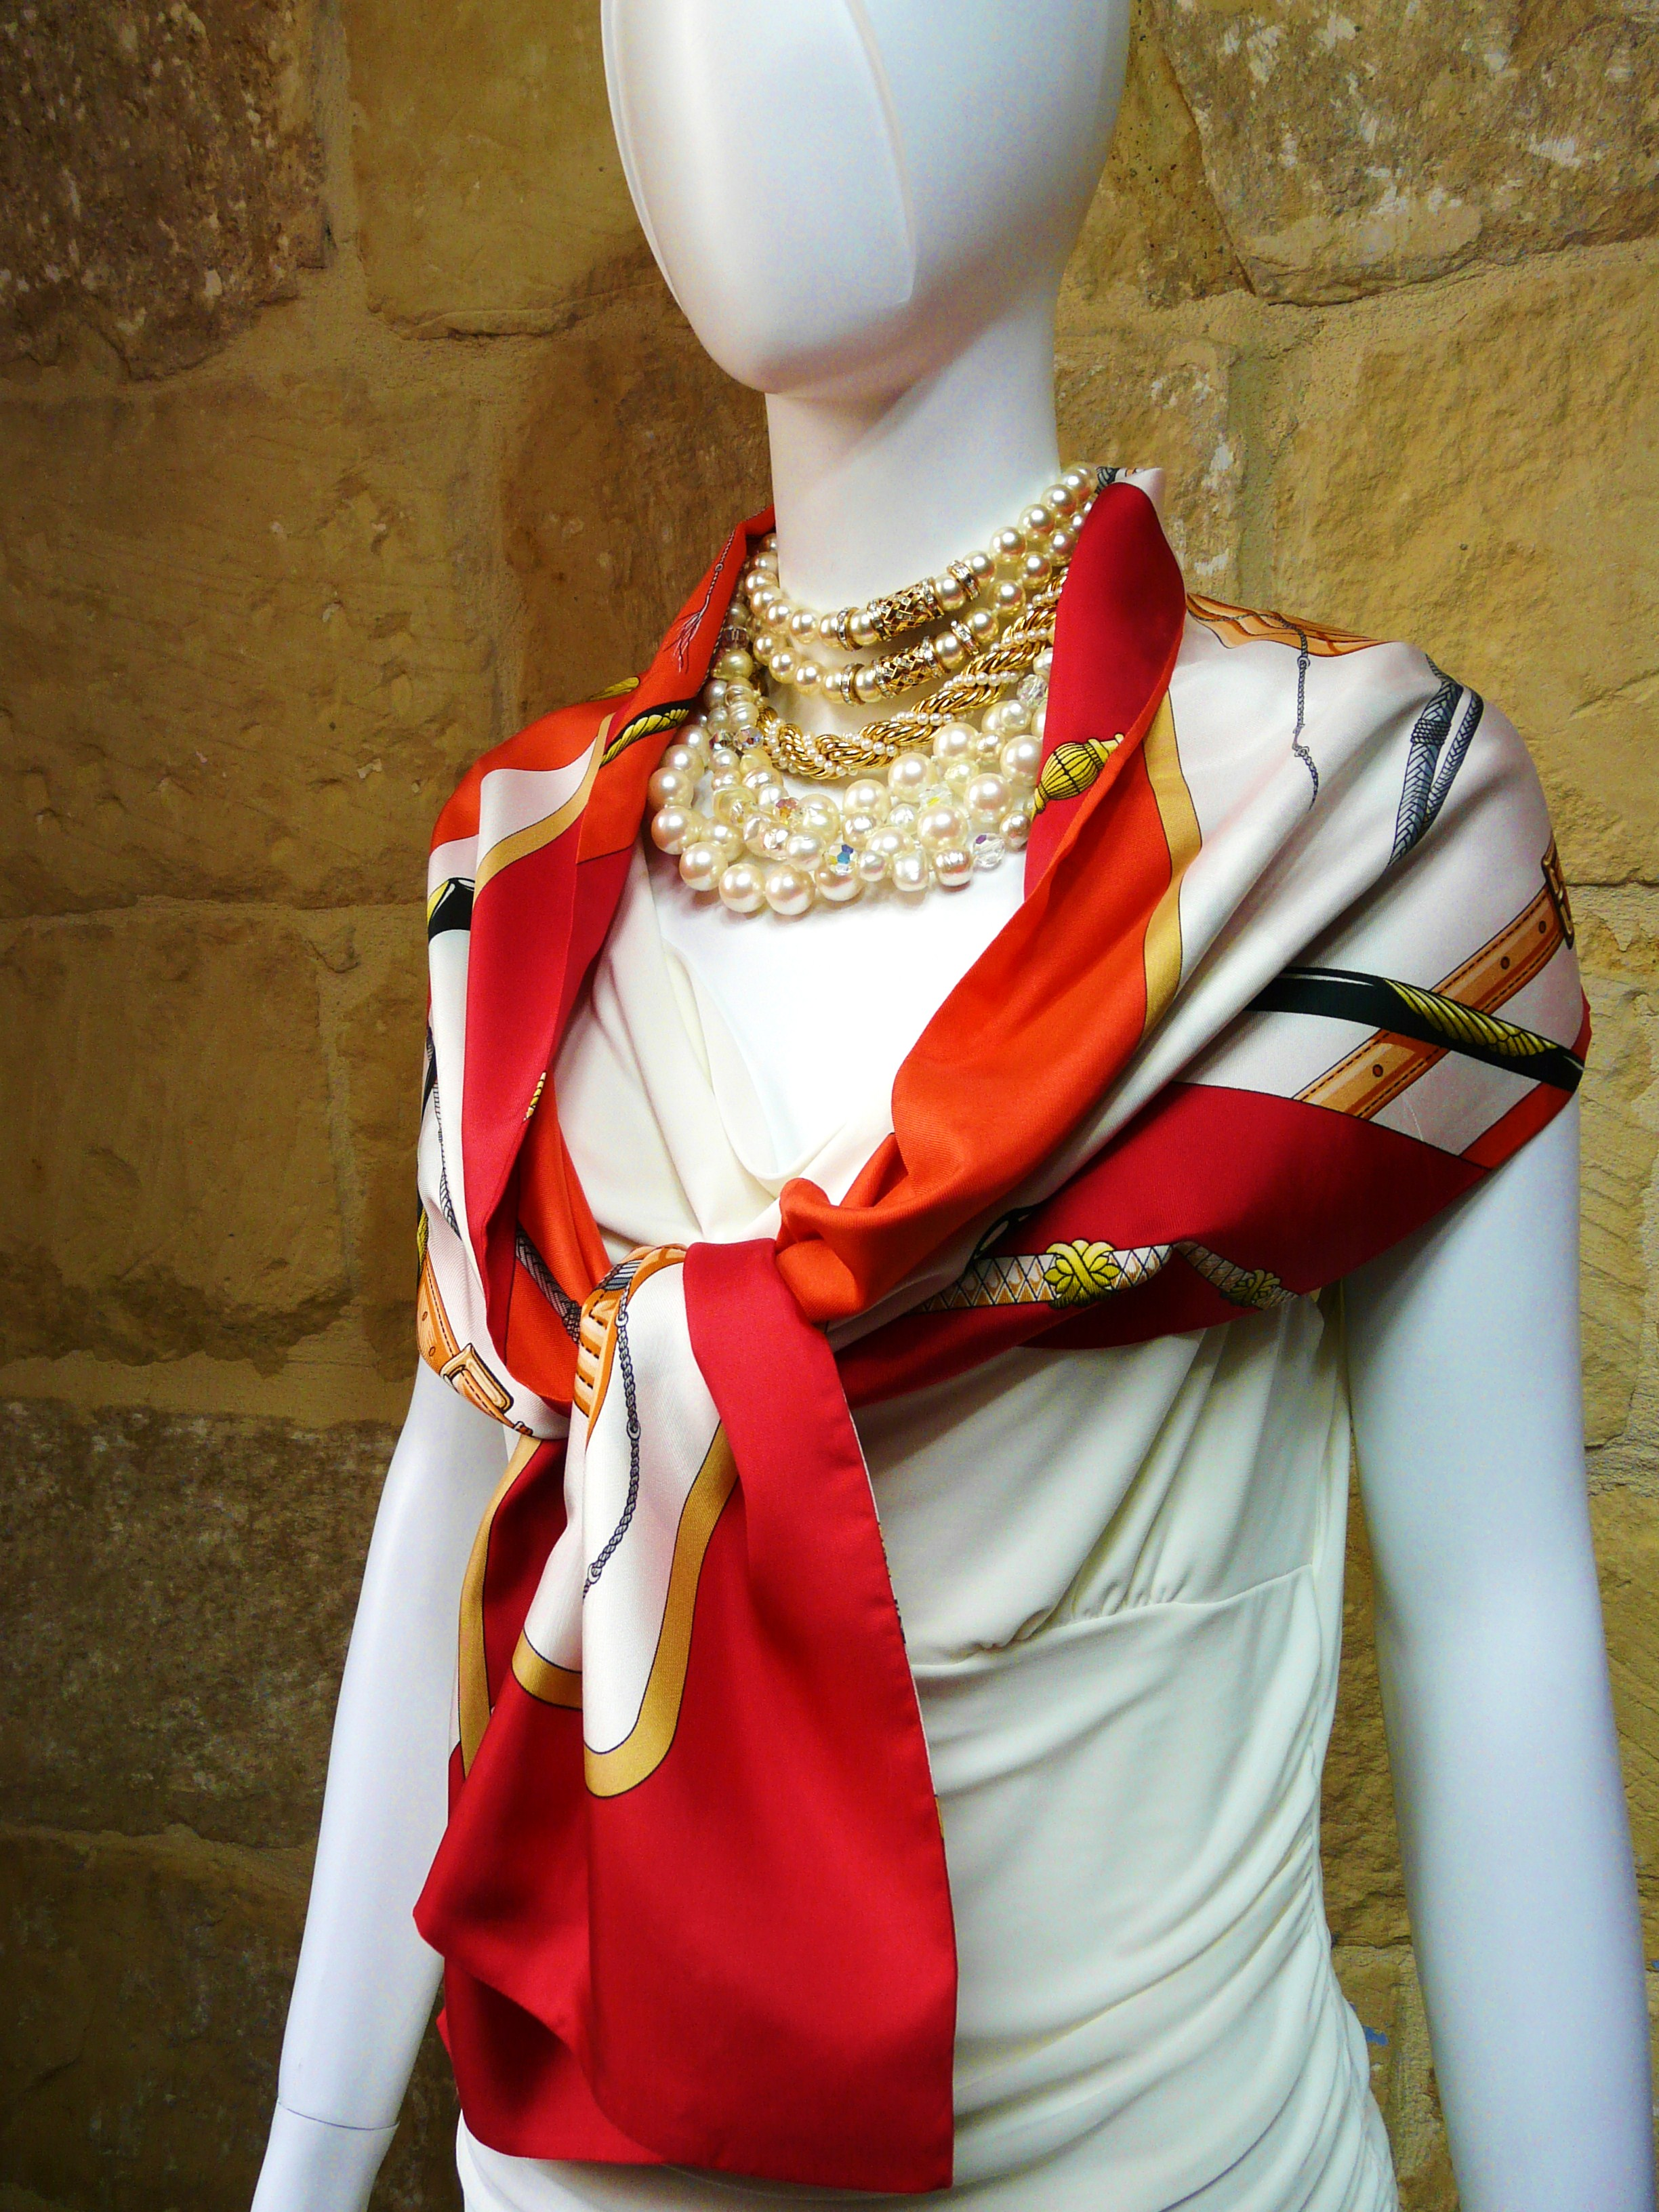 Another stunning Opera Scarf just listed for sale in our store